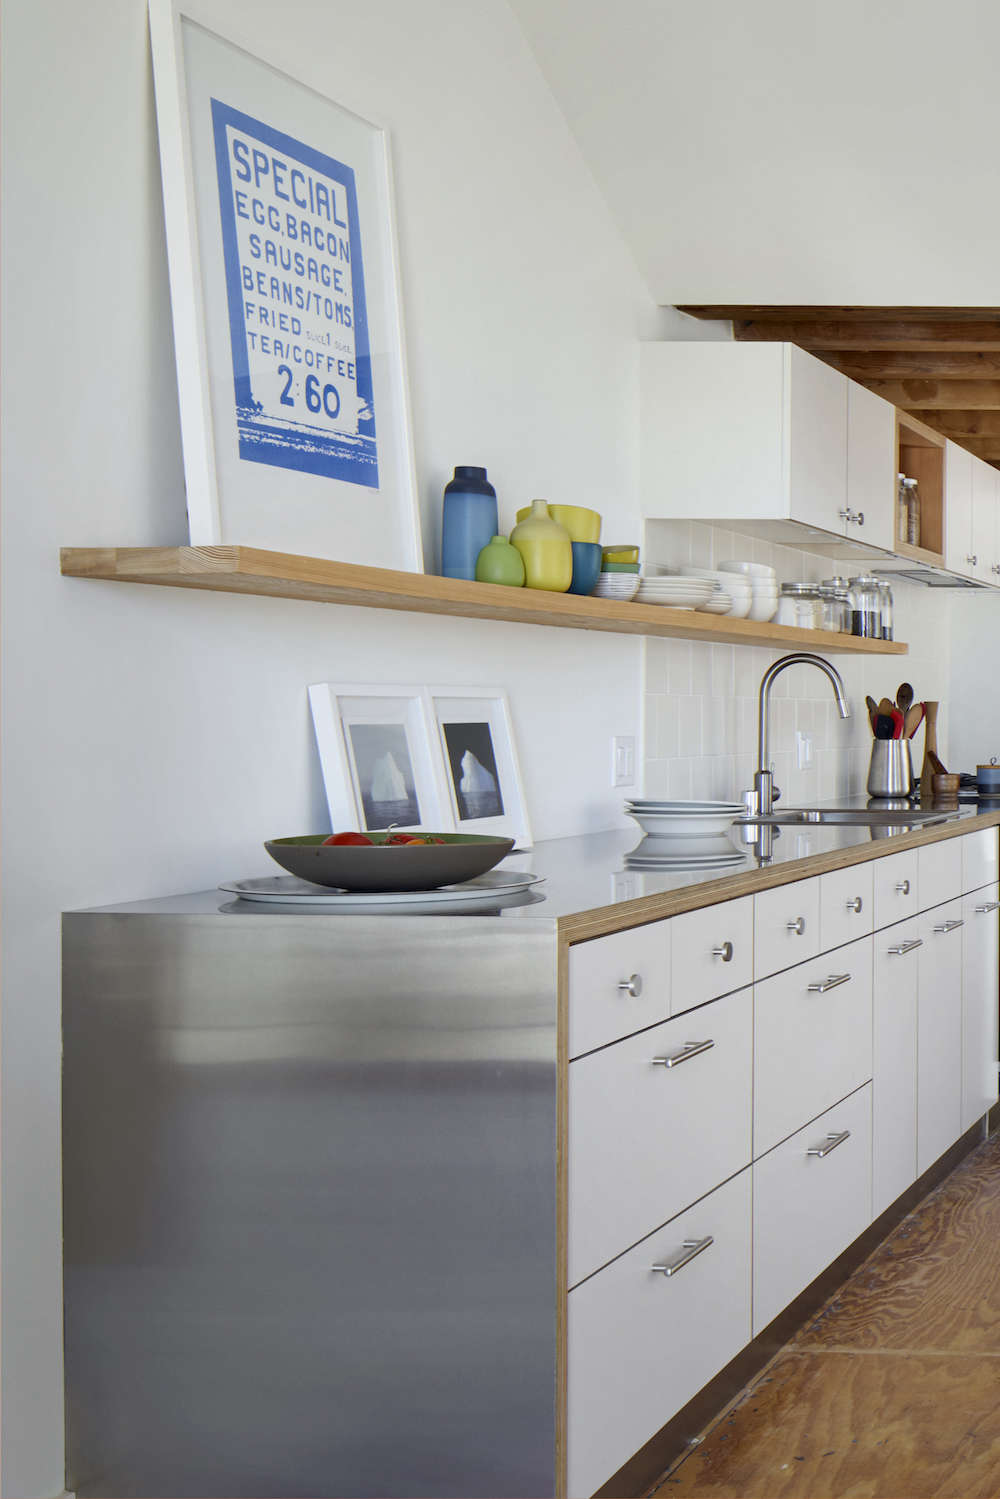 10 favorites: architects' budget kitchen countertop picks - remodelista